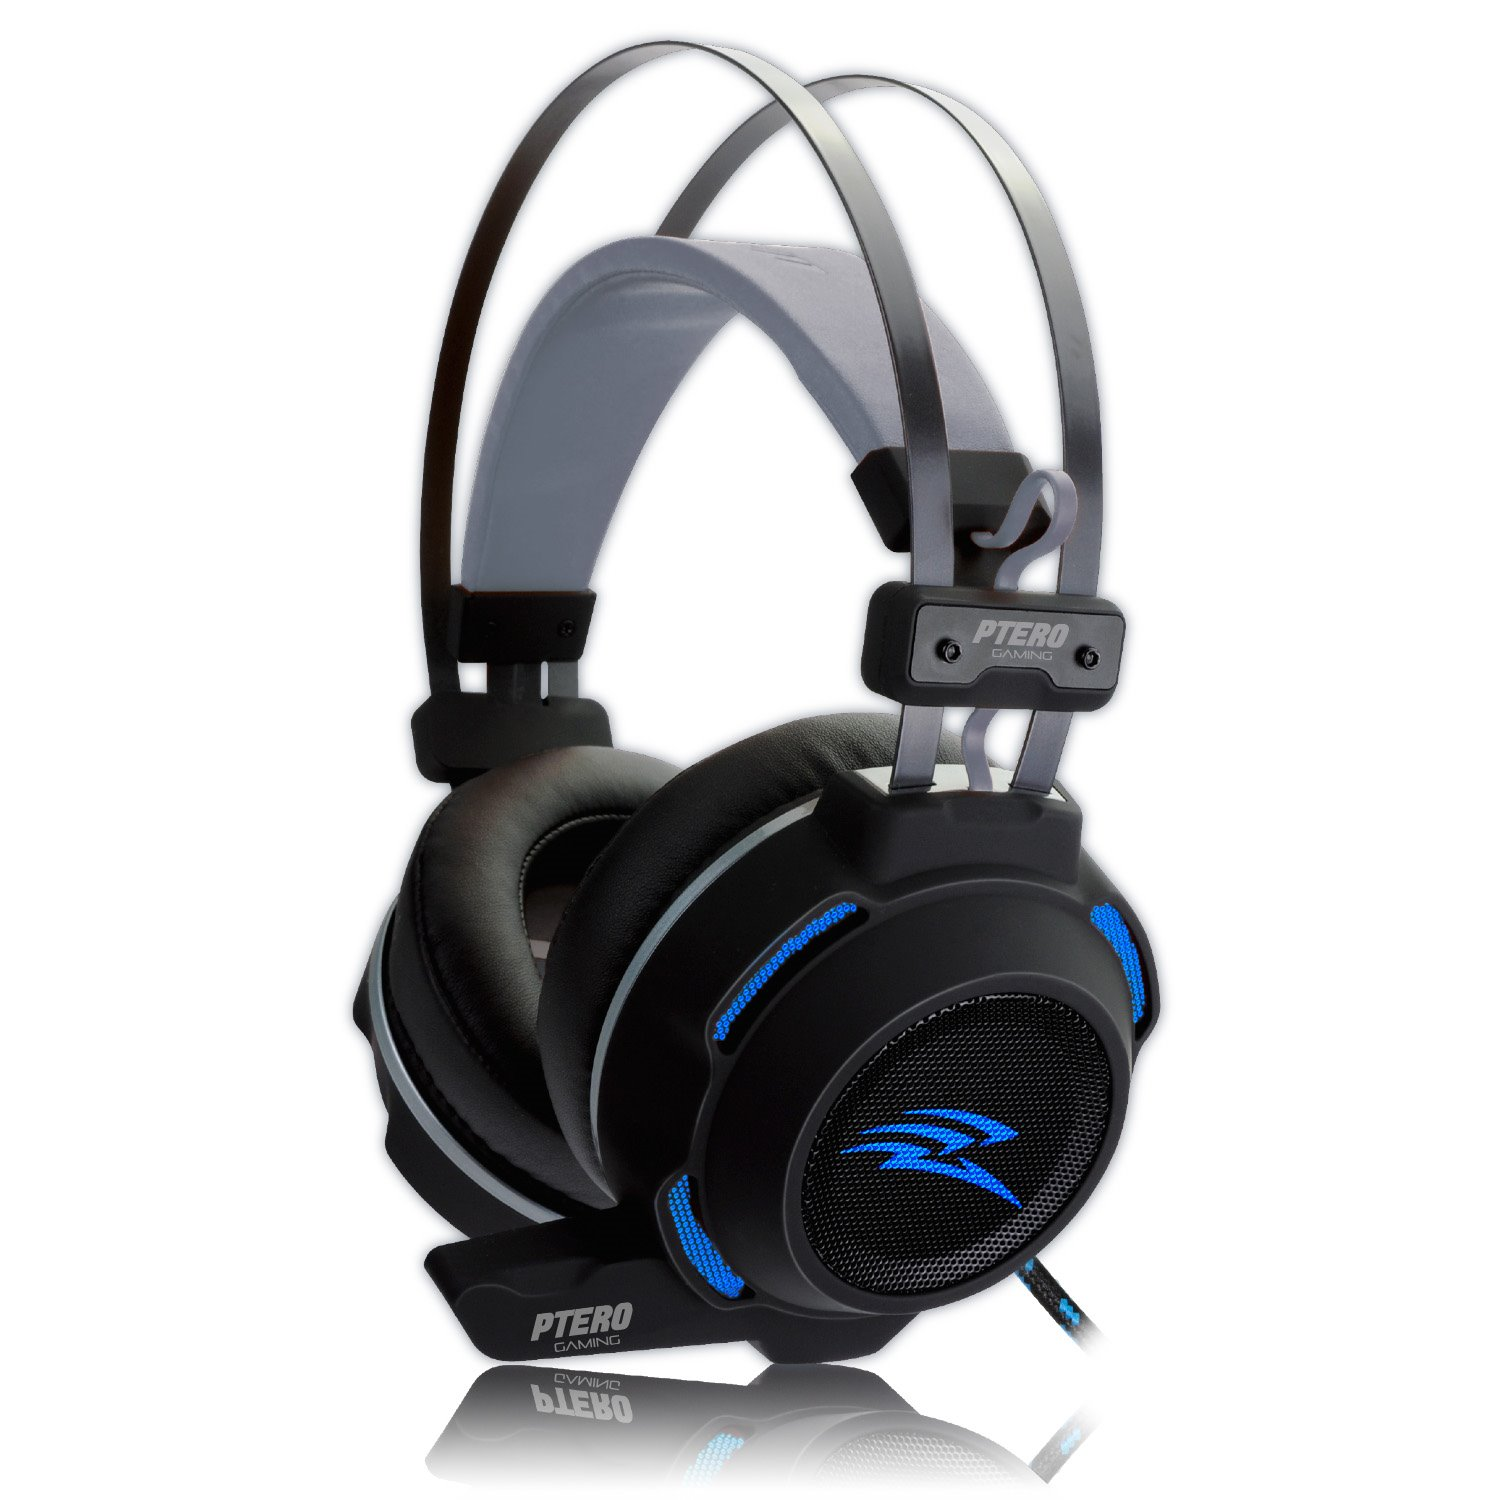 EVOLVEO Ptero GHX300, Gaming Headset with microphone